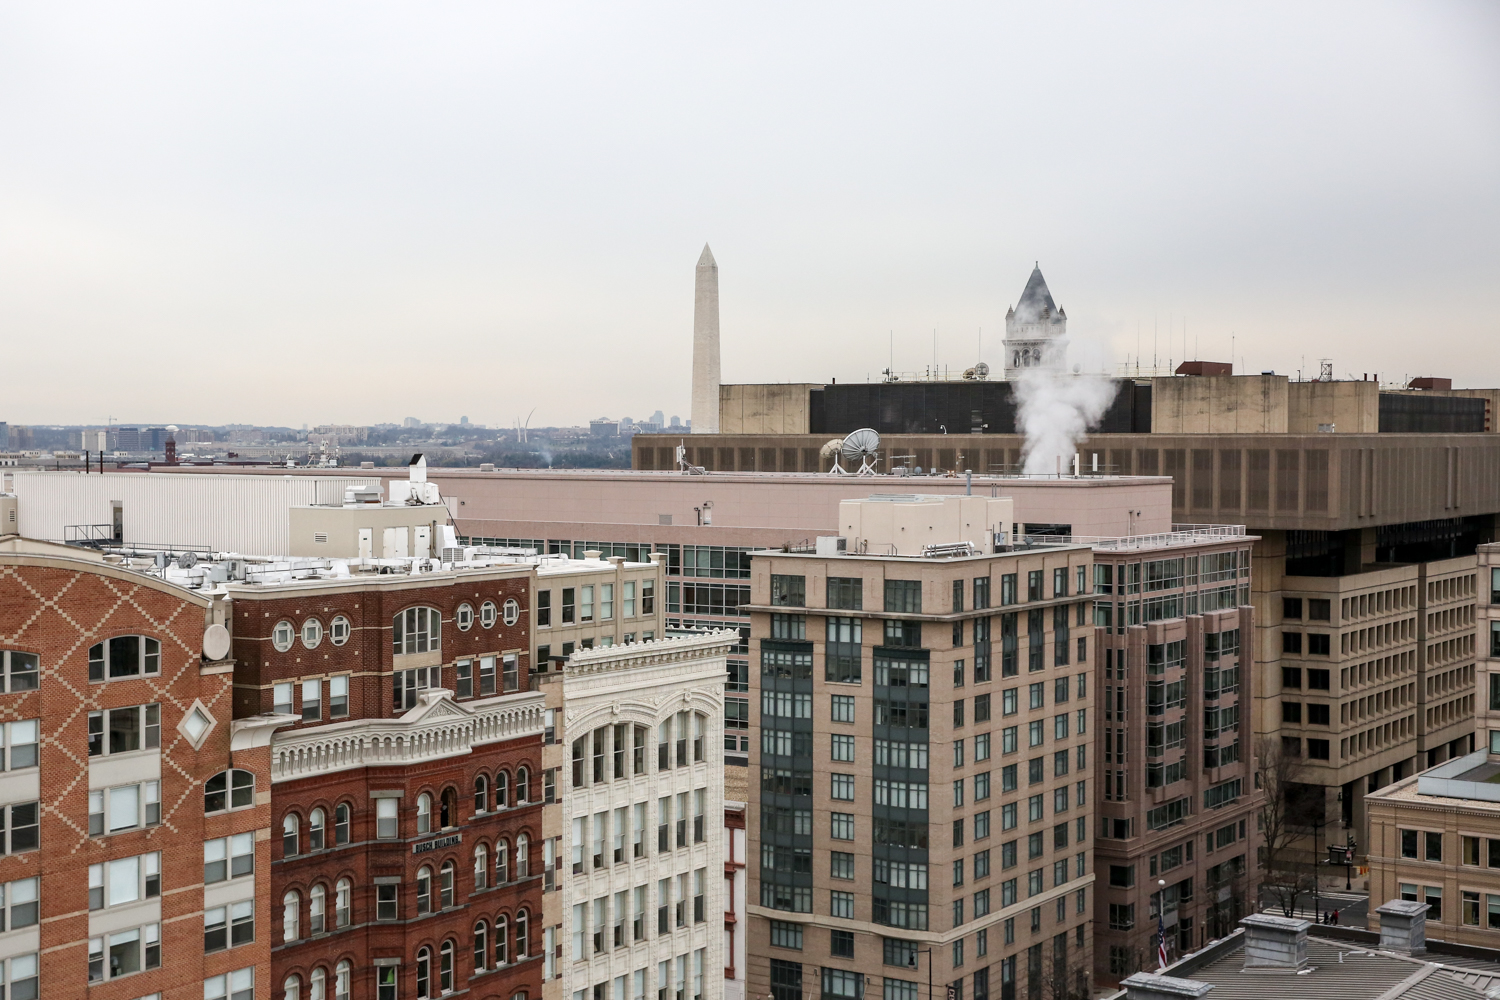 And we can't forget to rave about this rooftop! I mean the view alone is five-star worthy!(Image: Amanda Andrade-Rhoades/ DC Refined)